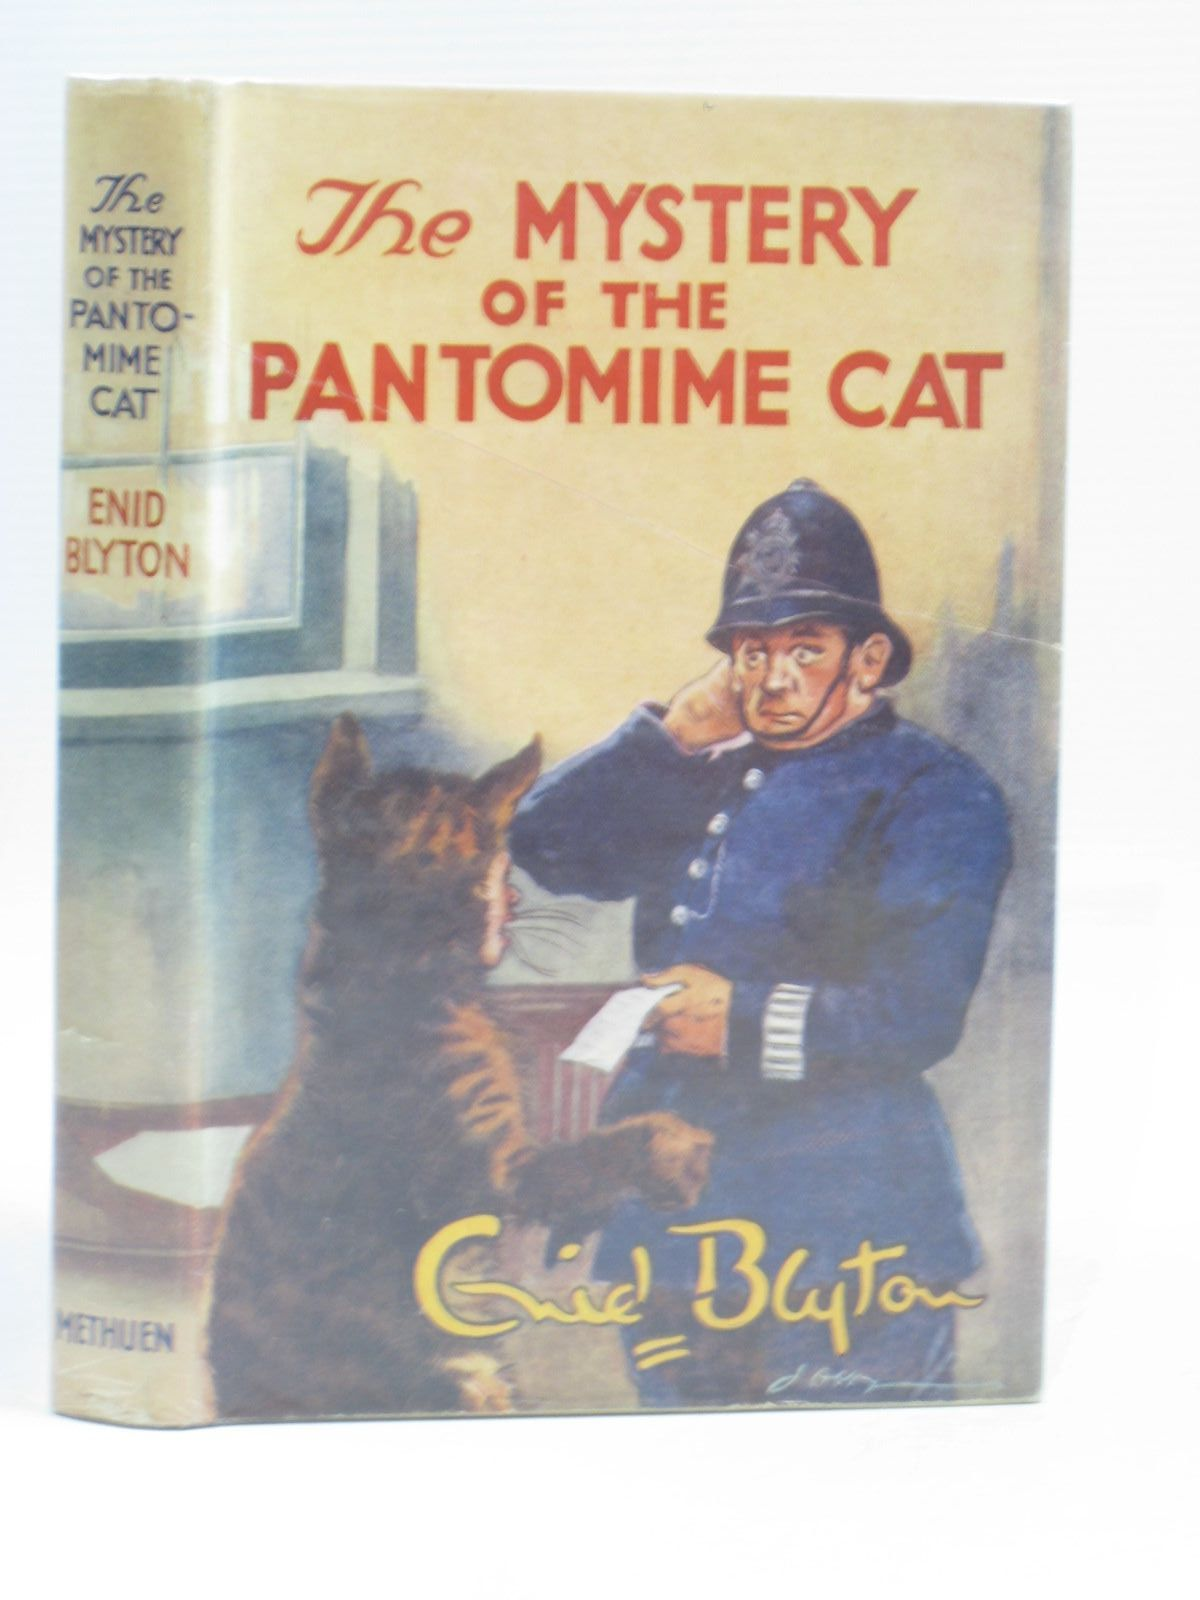 Cover of THE MYSTERY OF THE PANTOMIME CAT by Enid Blyton